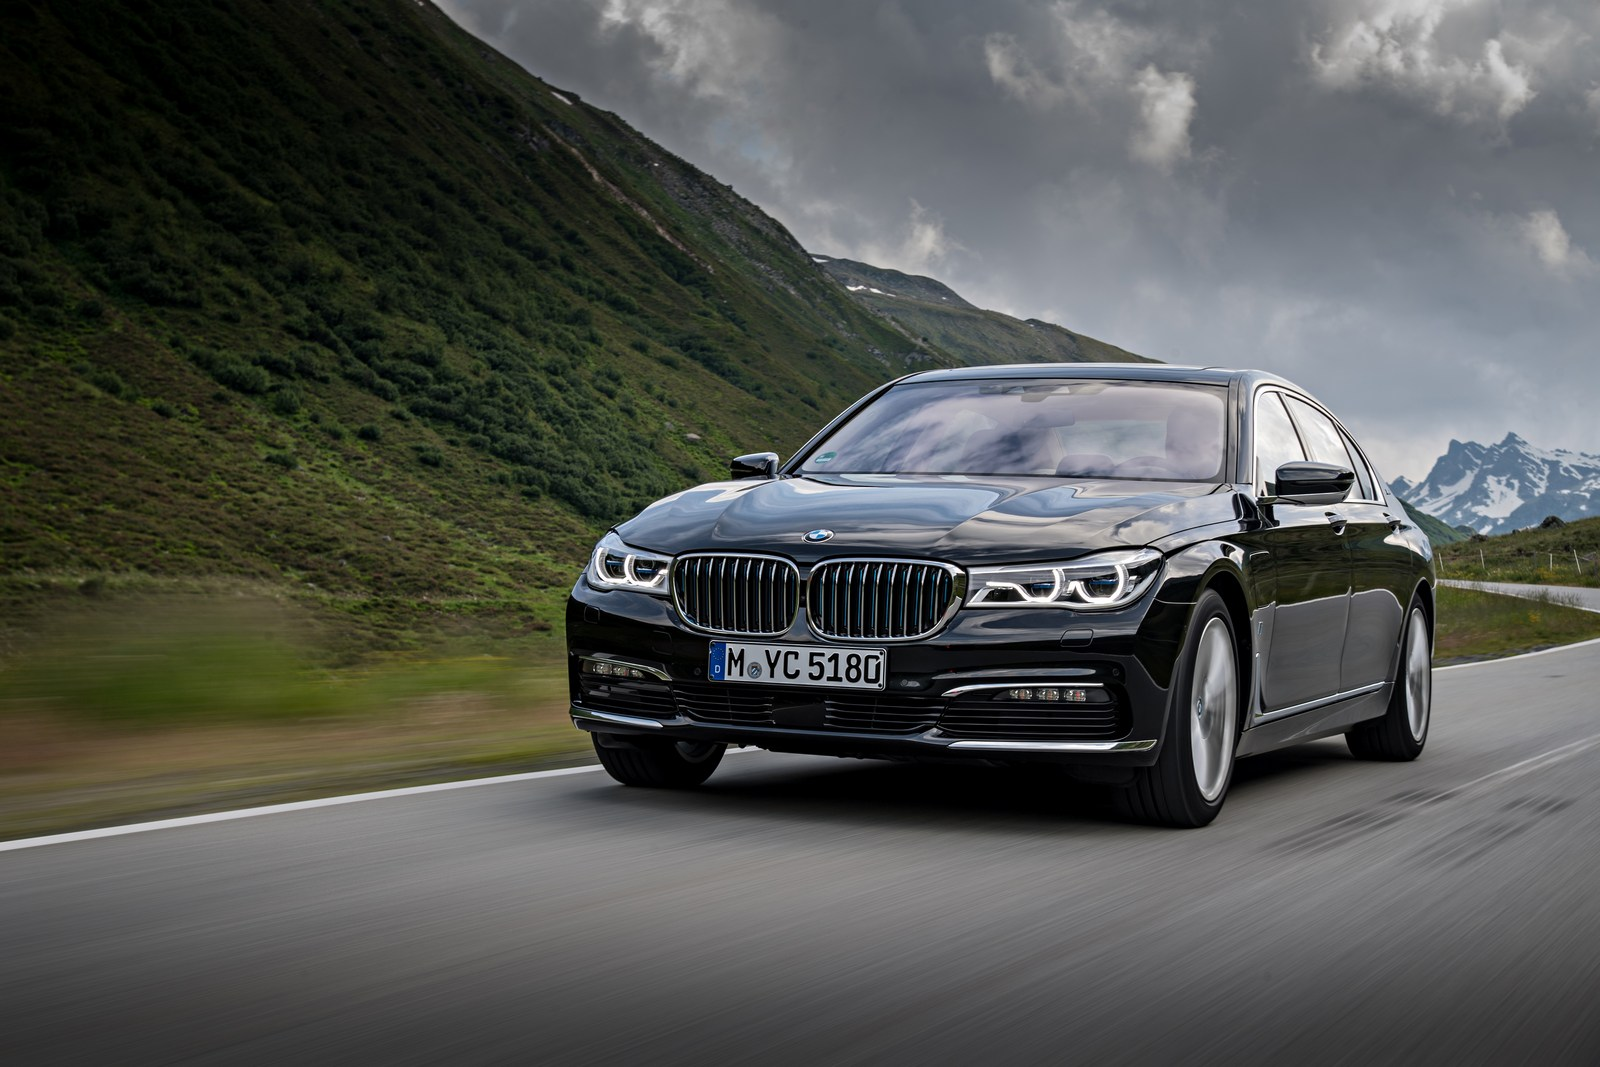 2019 Bmw 740e Iperformance To Receive A More Power